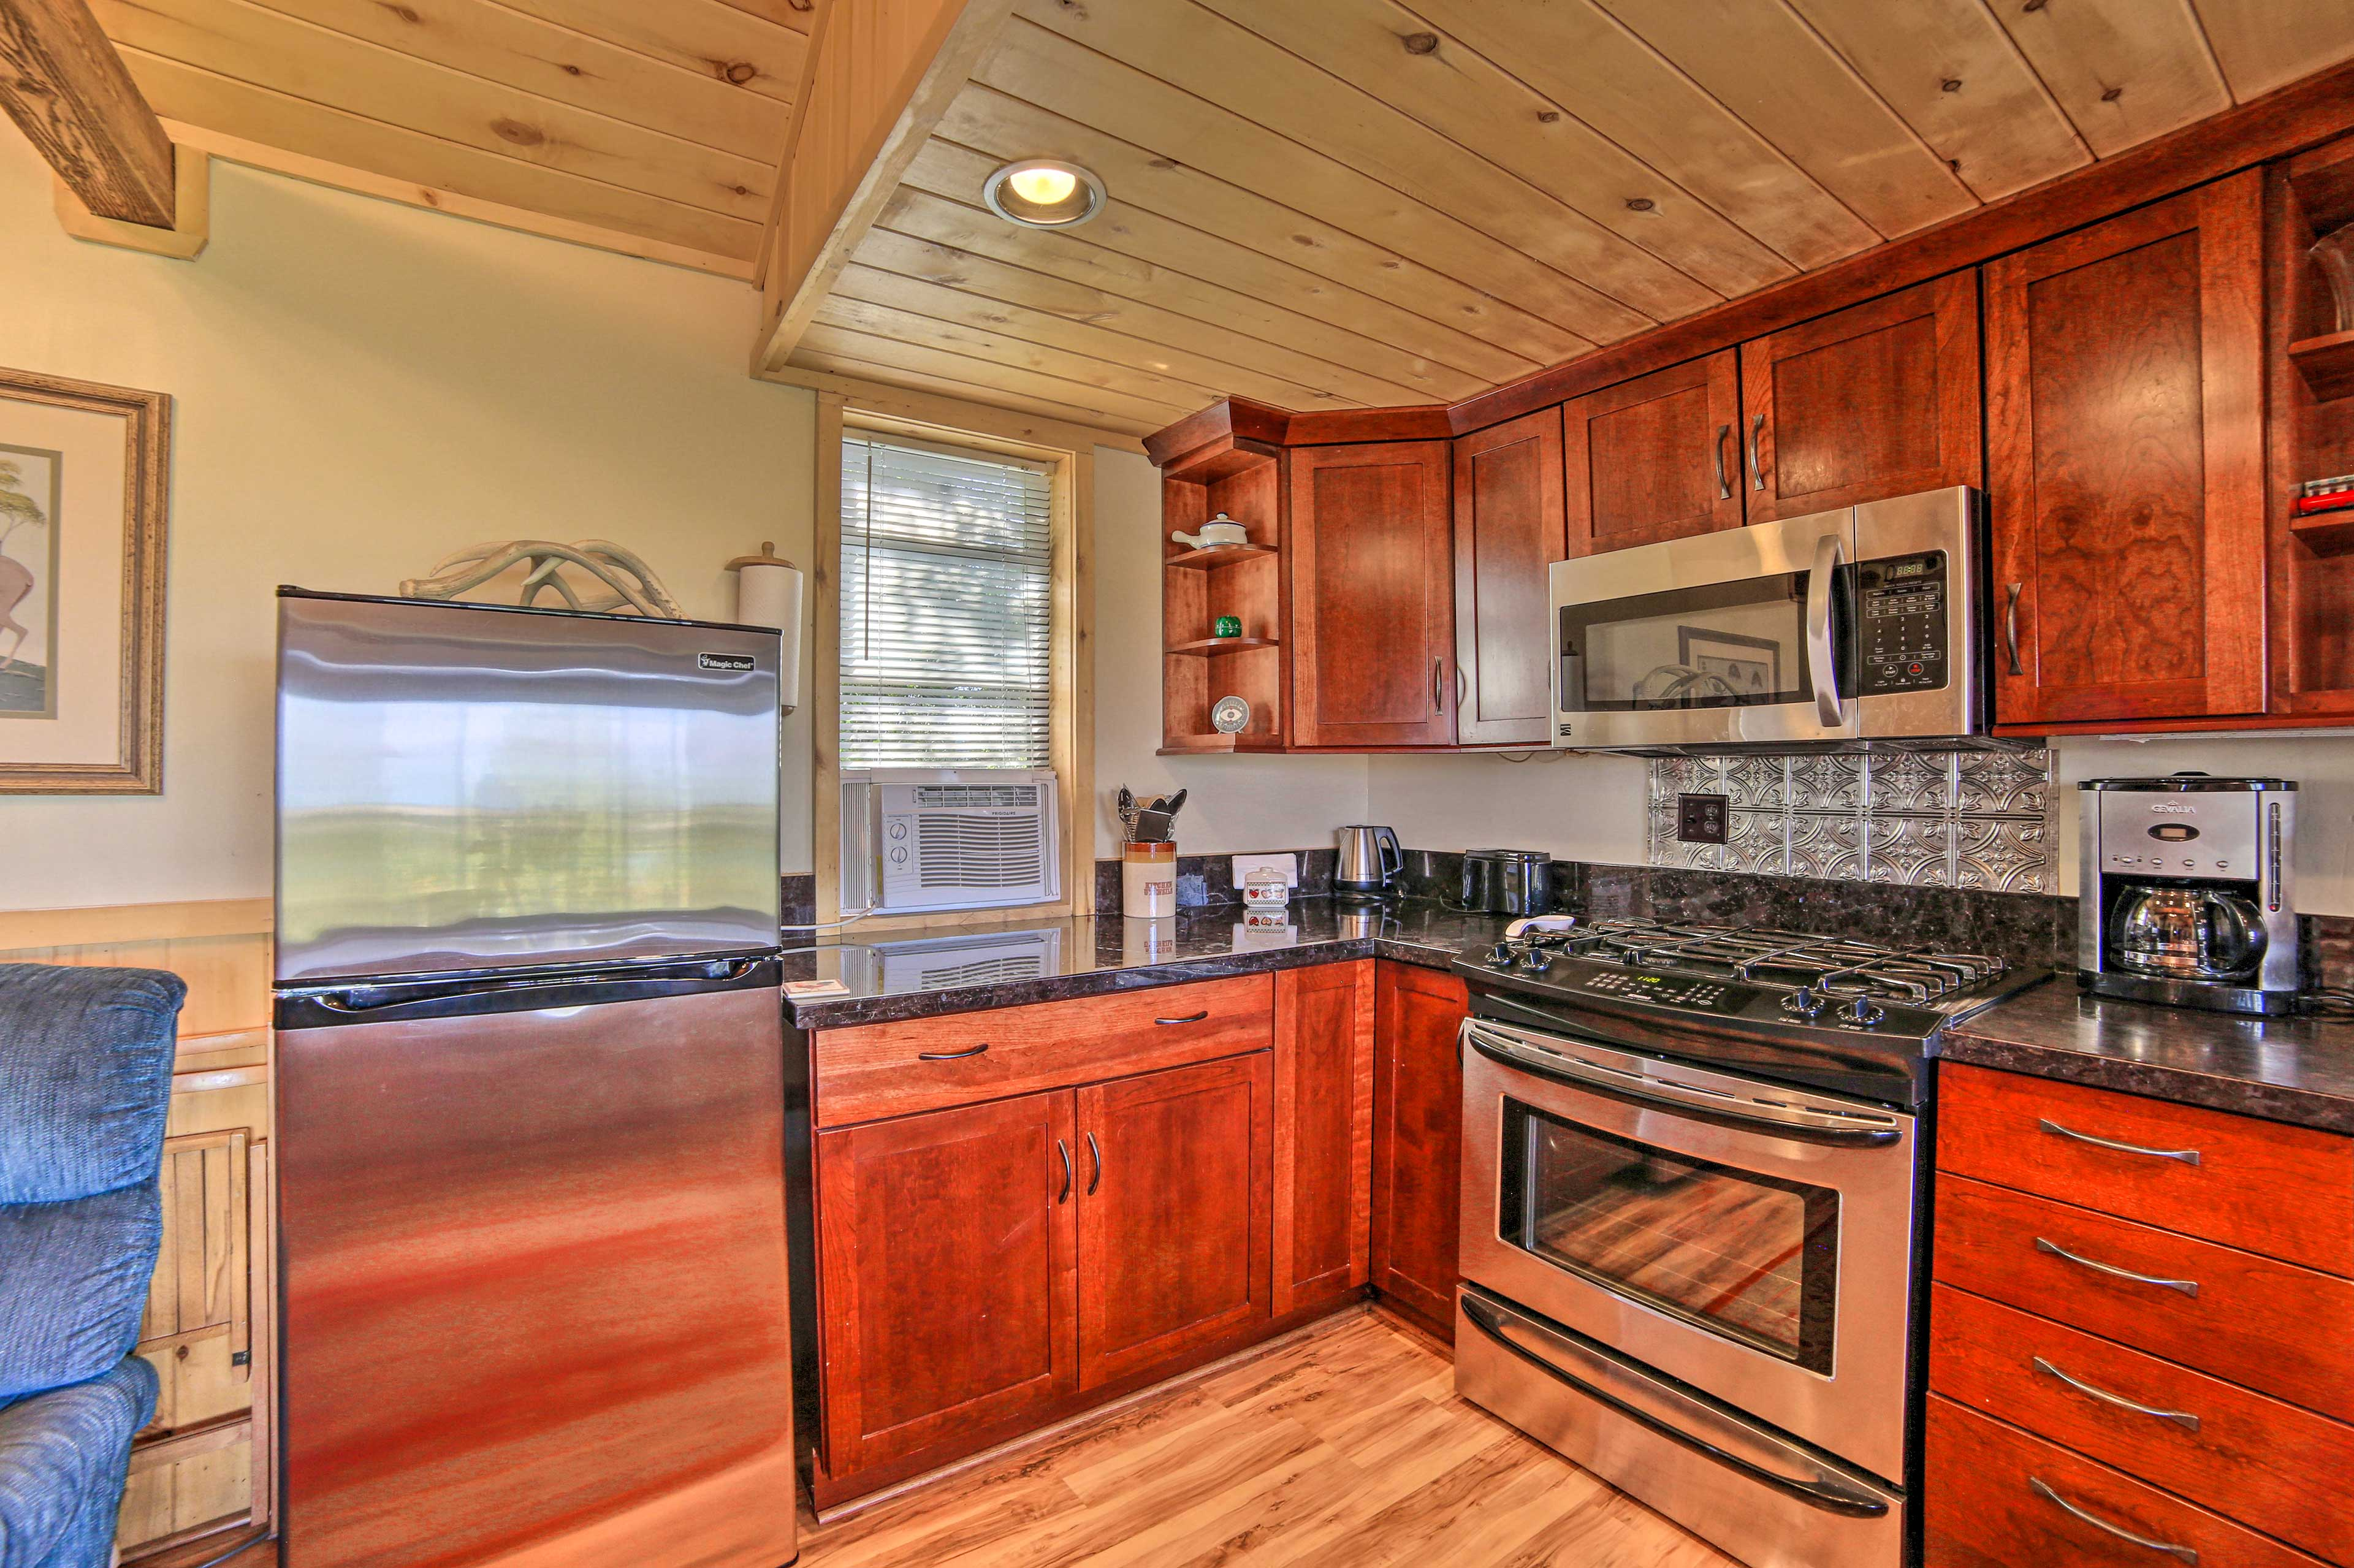 The kitchen has new stainless steel appliances.